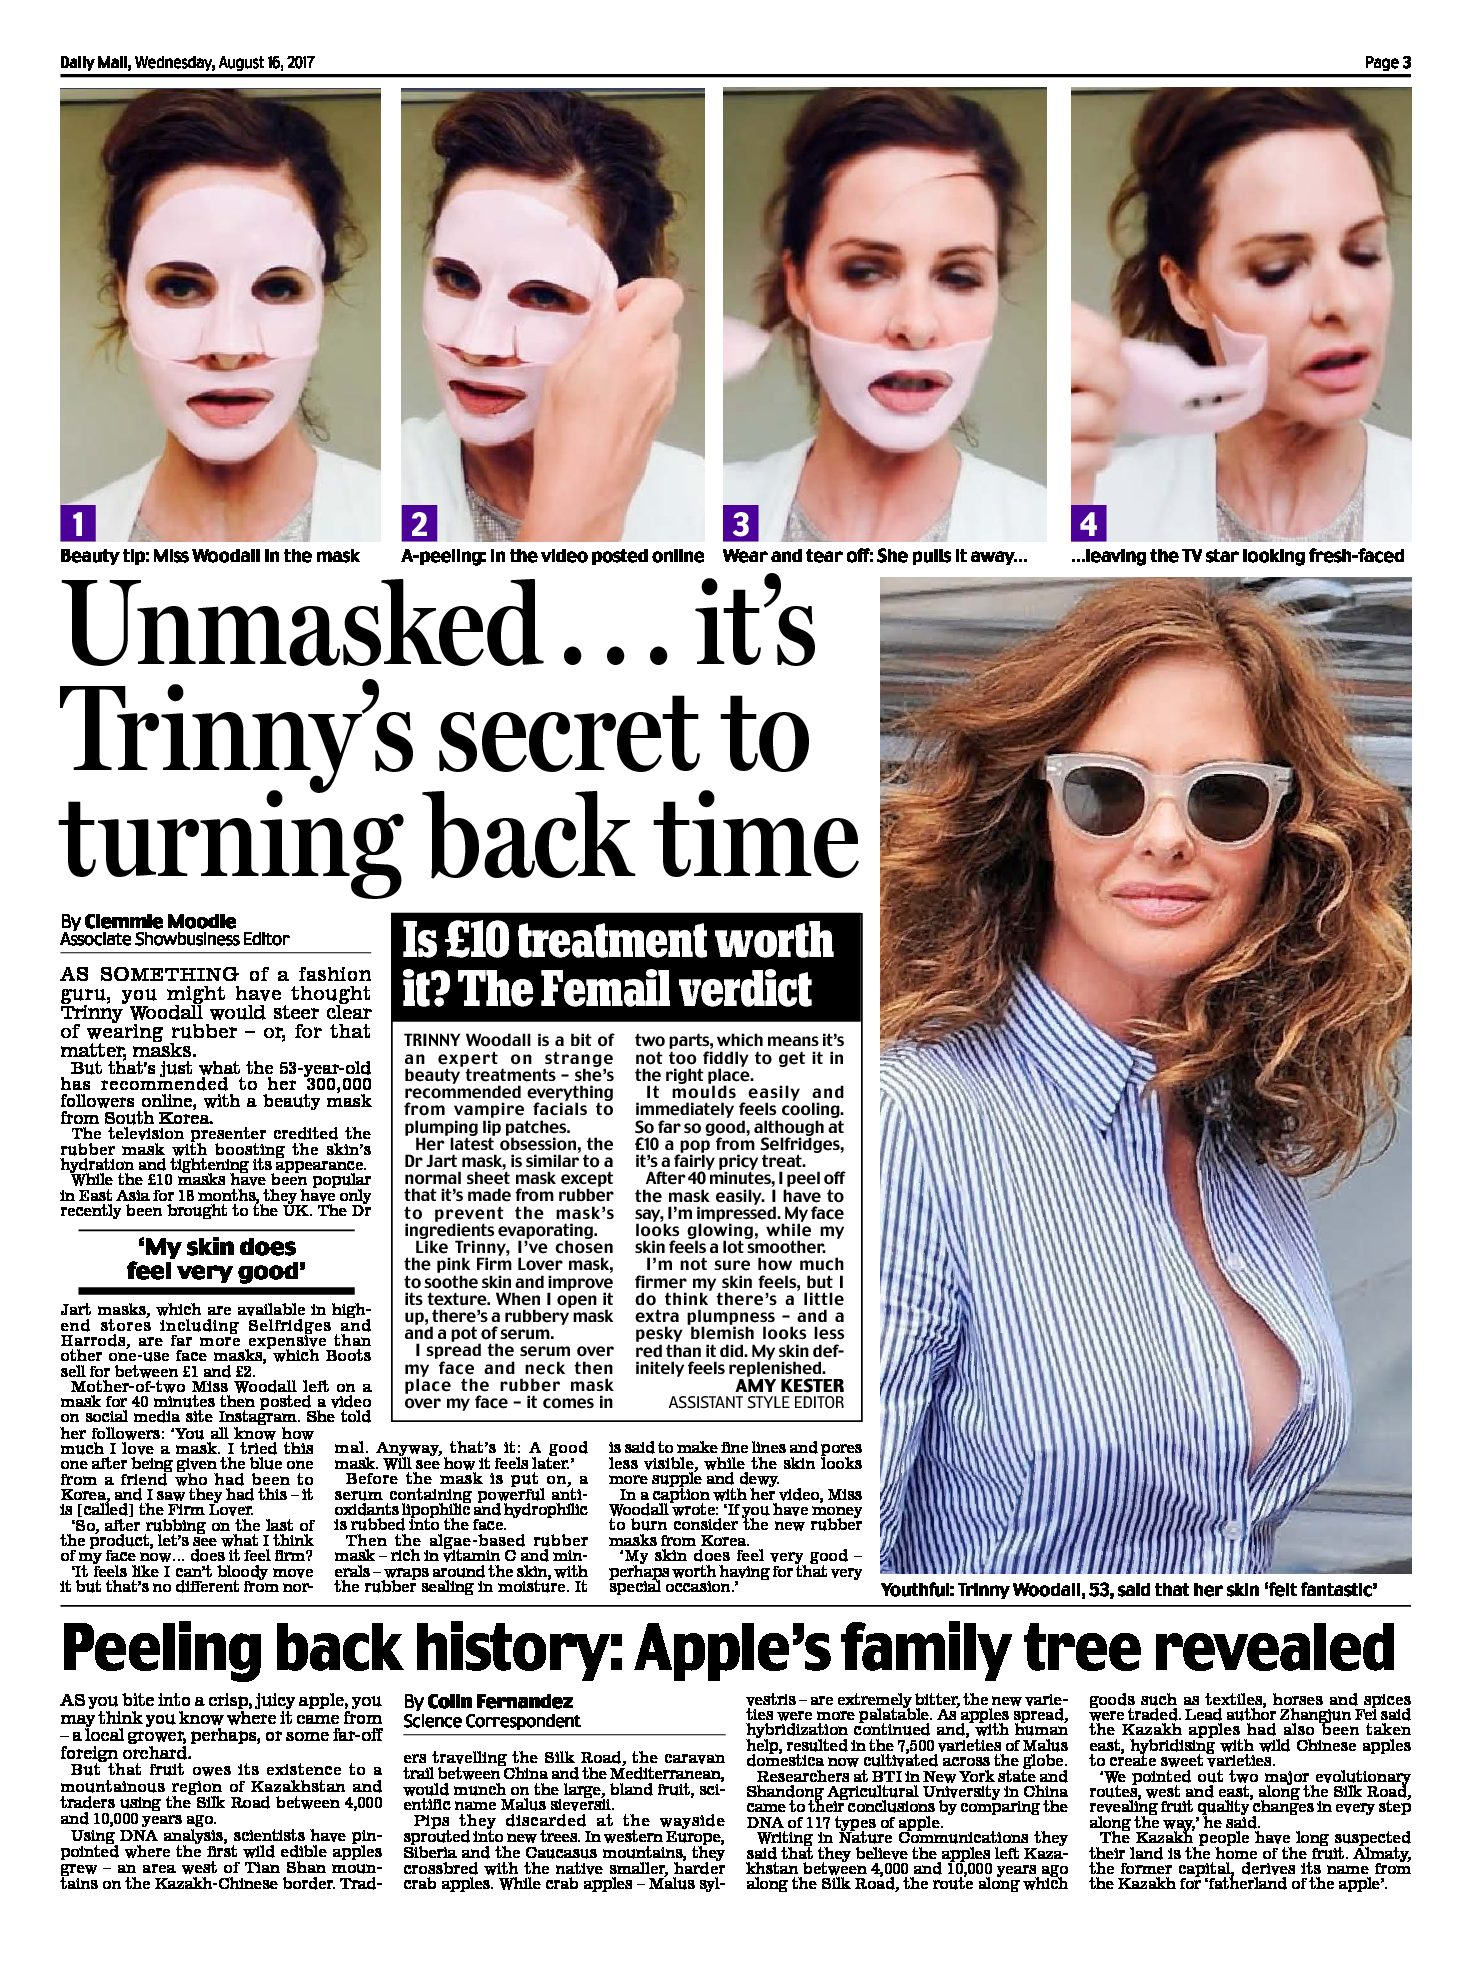 Trinny Face Mask